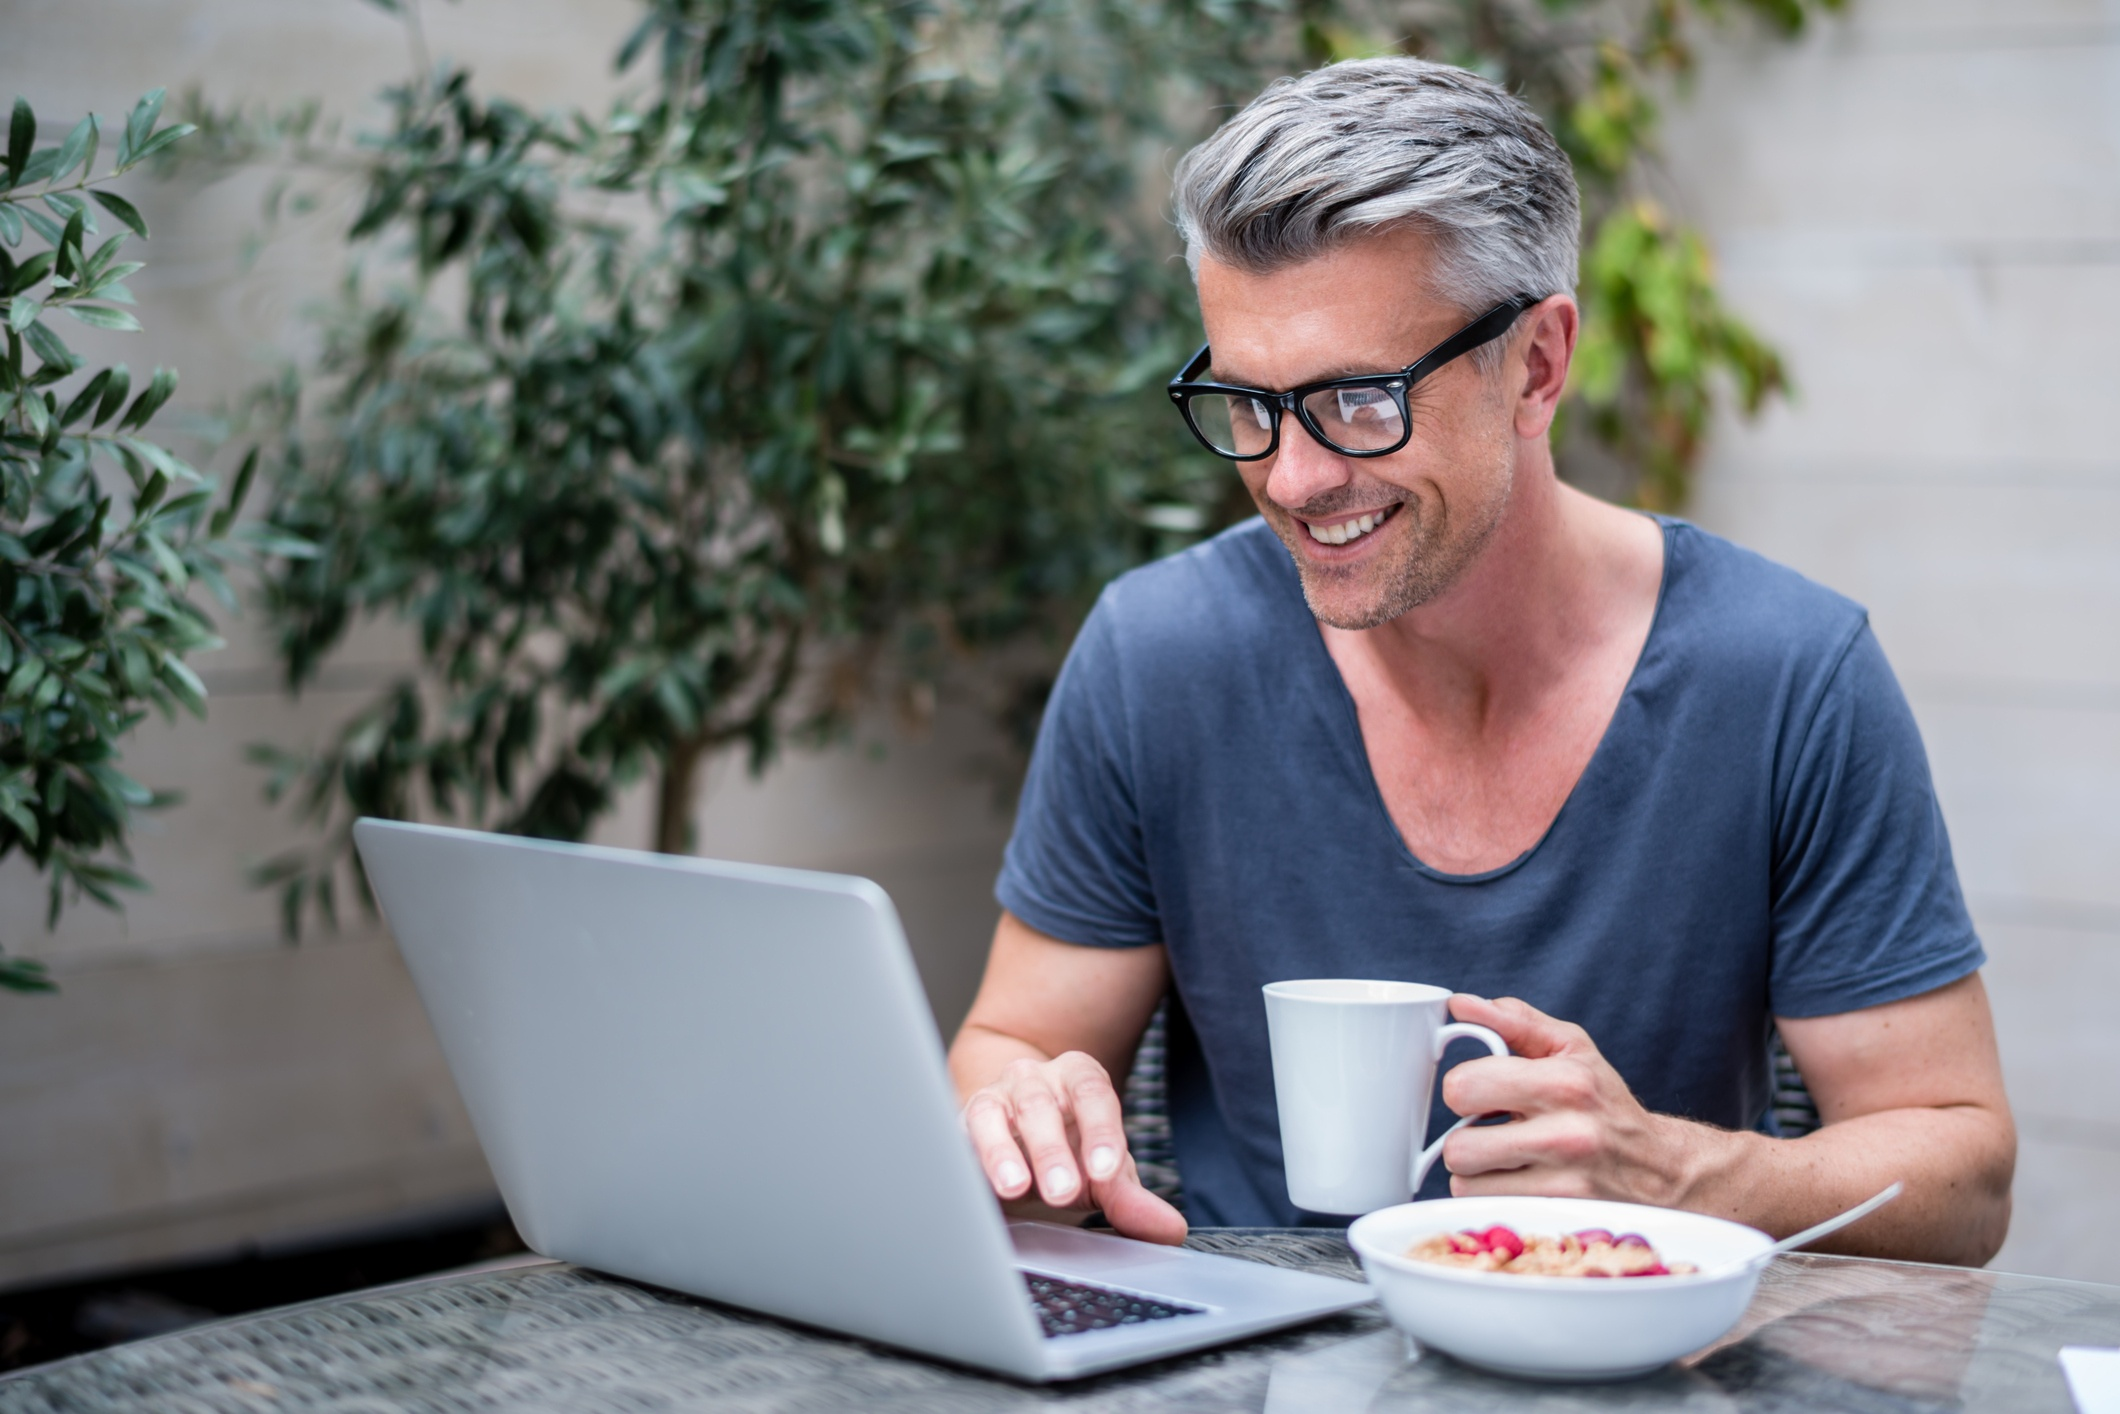 Technological enablers are important for flexible work, allowing  working from home or elsewhere, when it is most convenient.